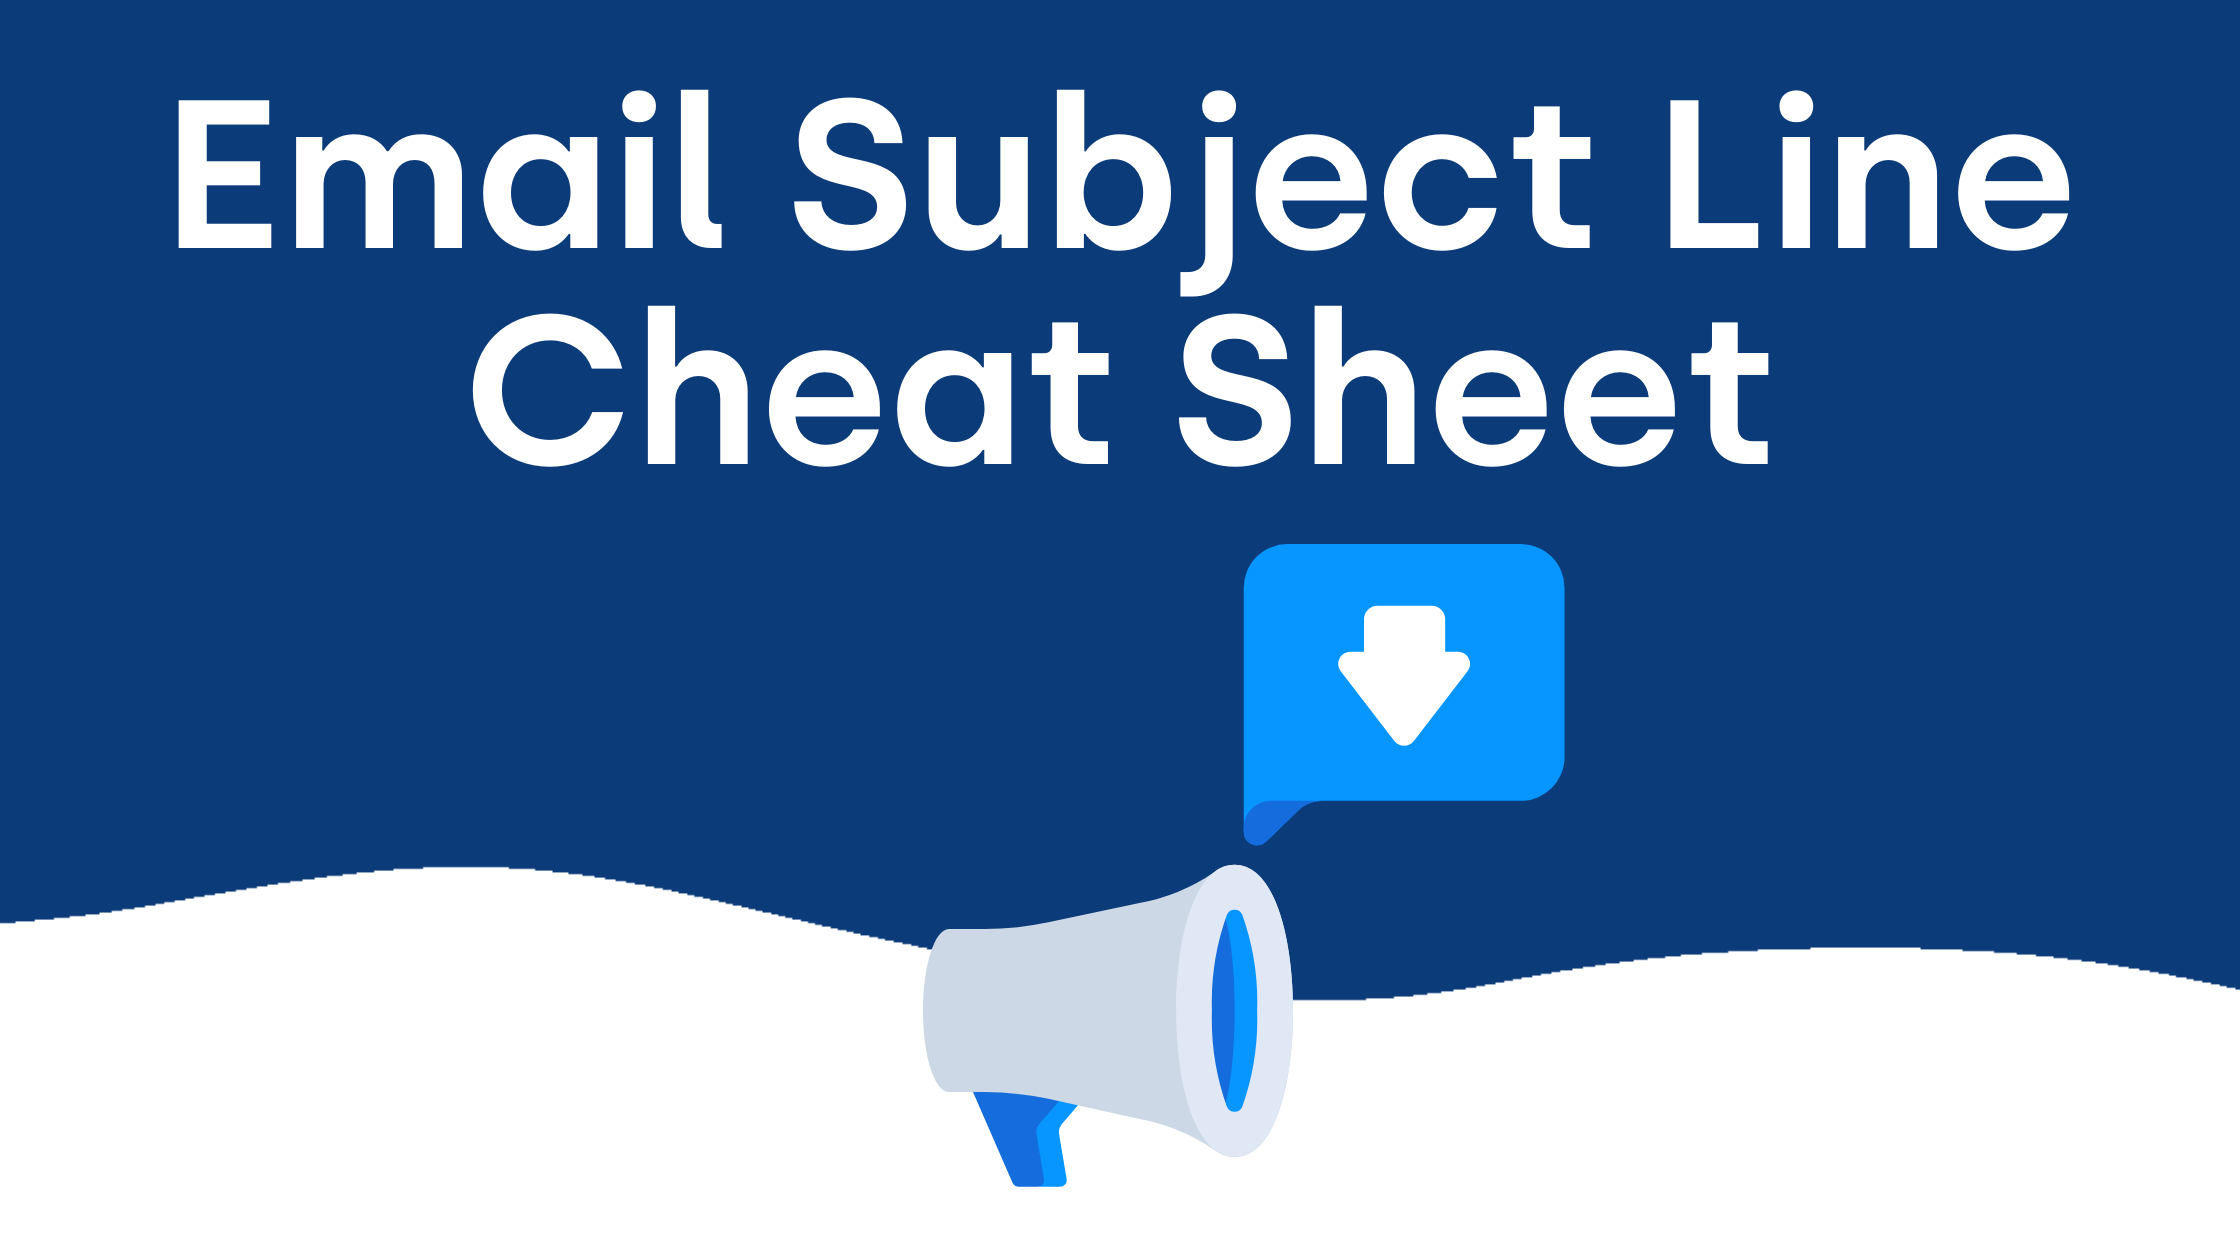 Email Subject Line Cheat Sheet